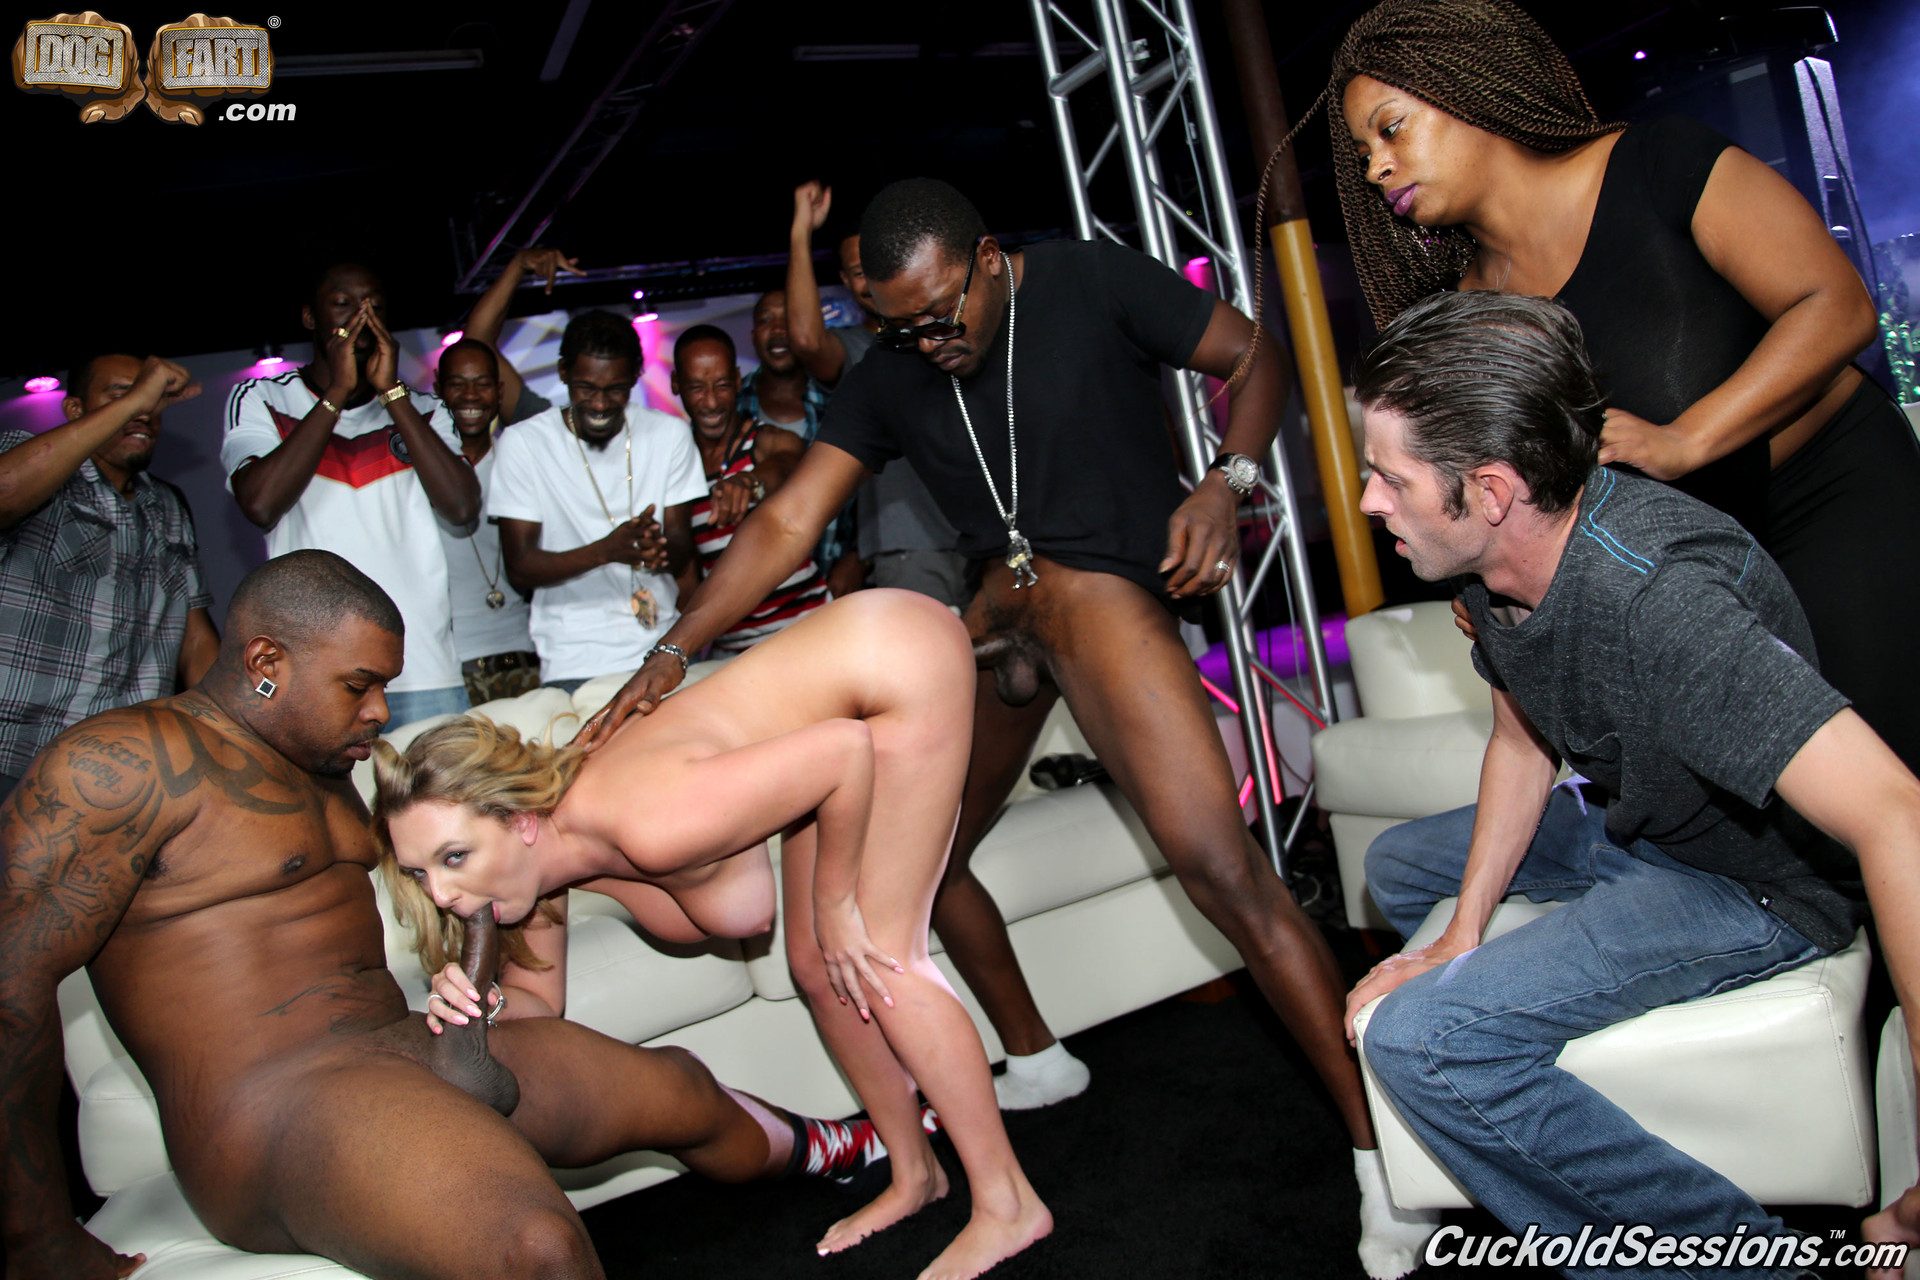 Cuckold sessions brooke wylde interracial at cuckold sessions